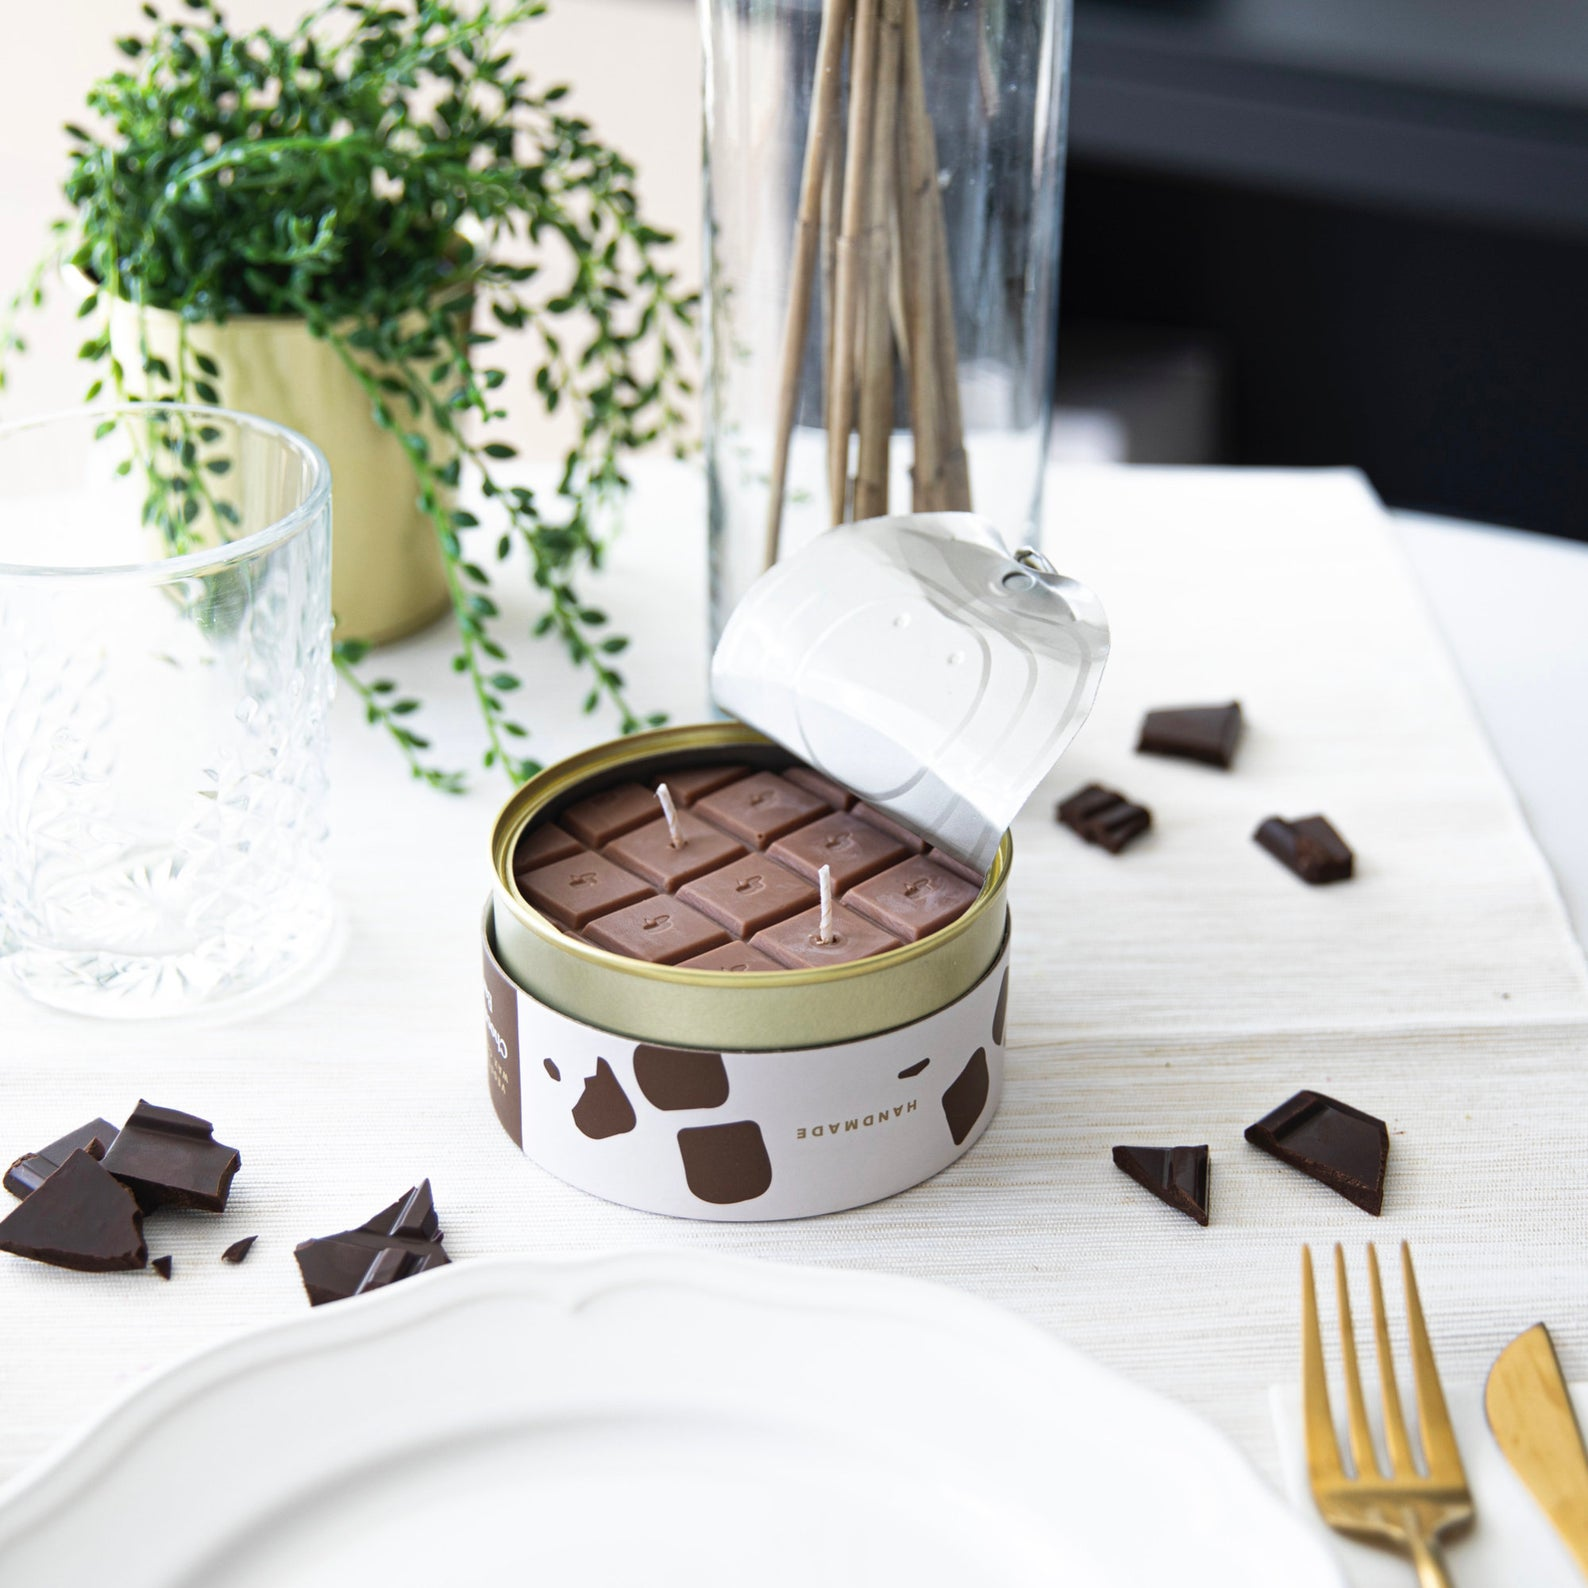 candle that resembles chocolate bar